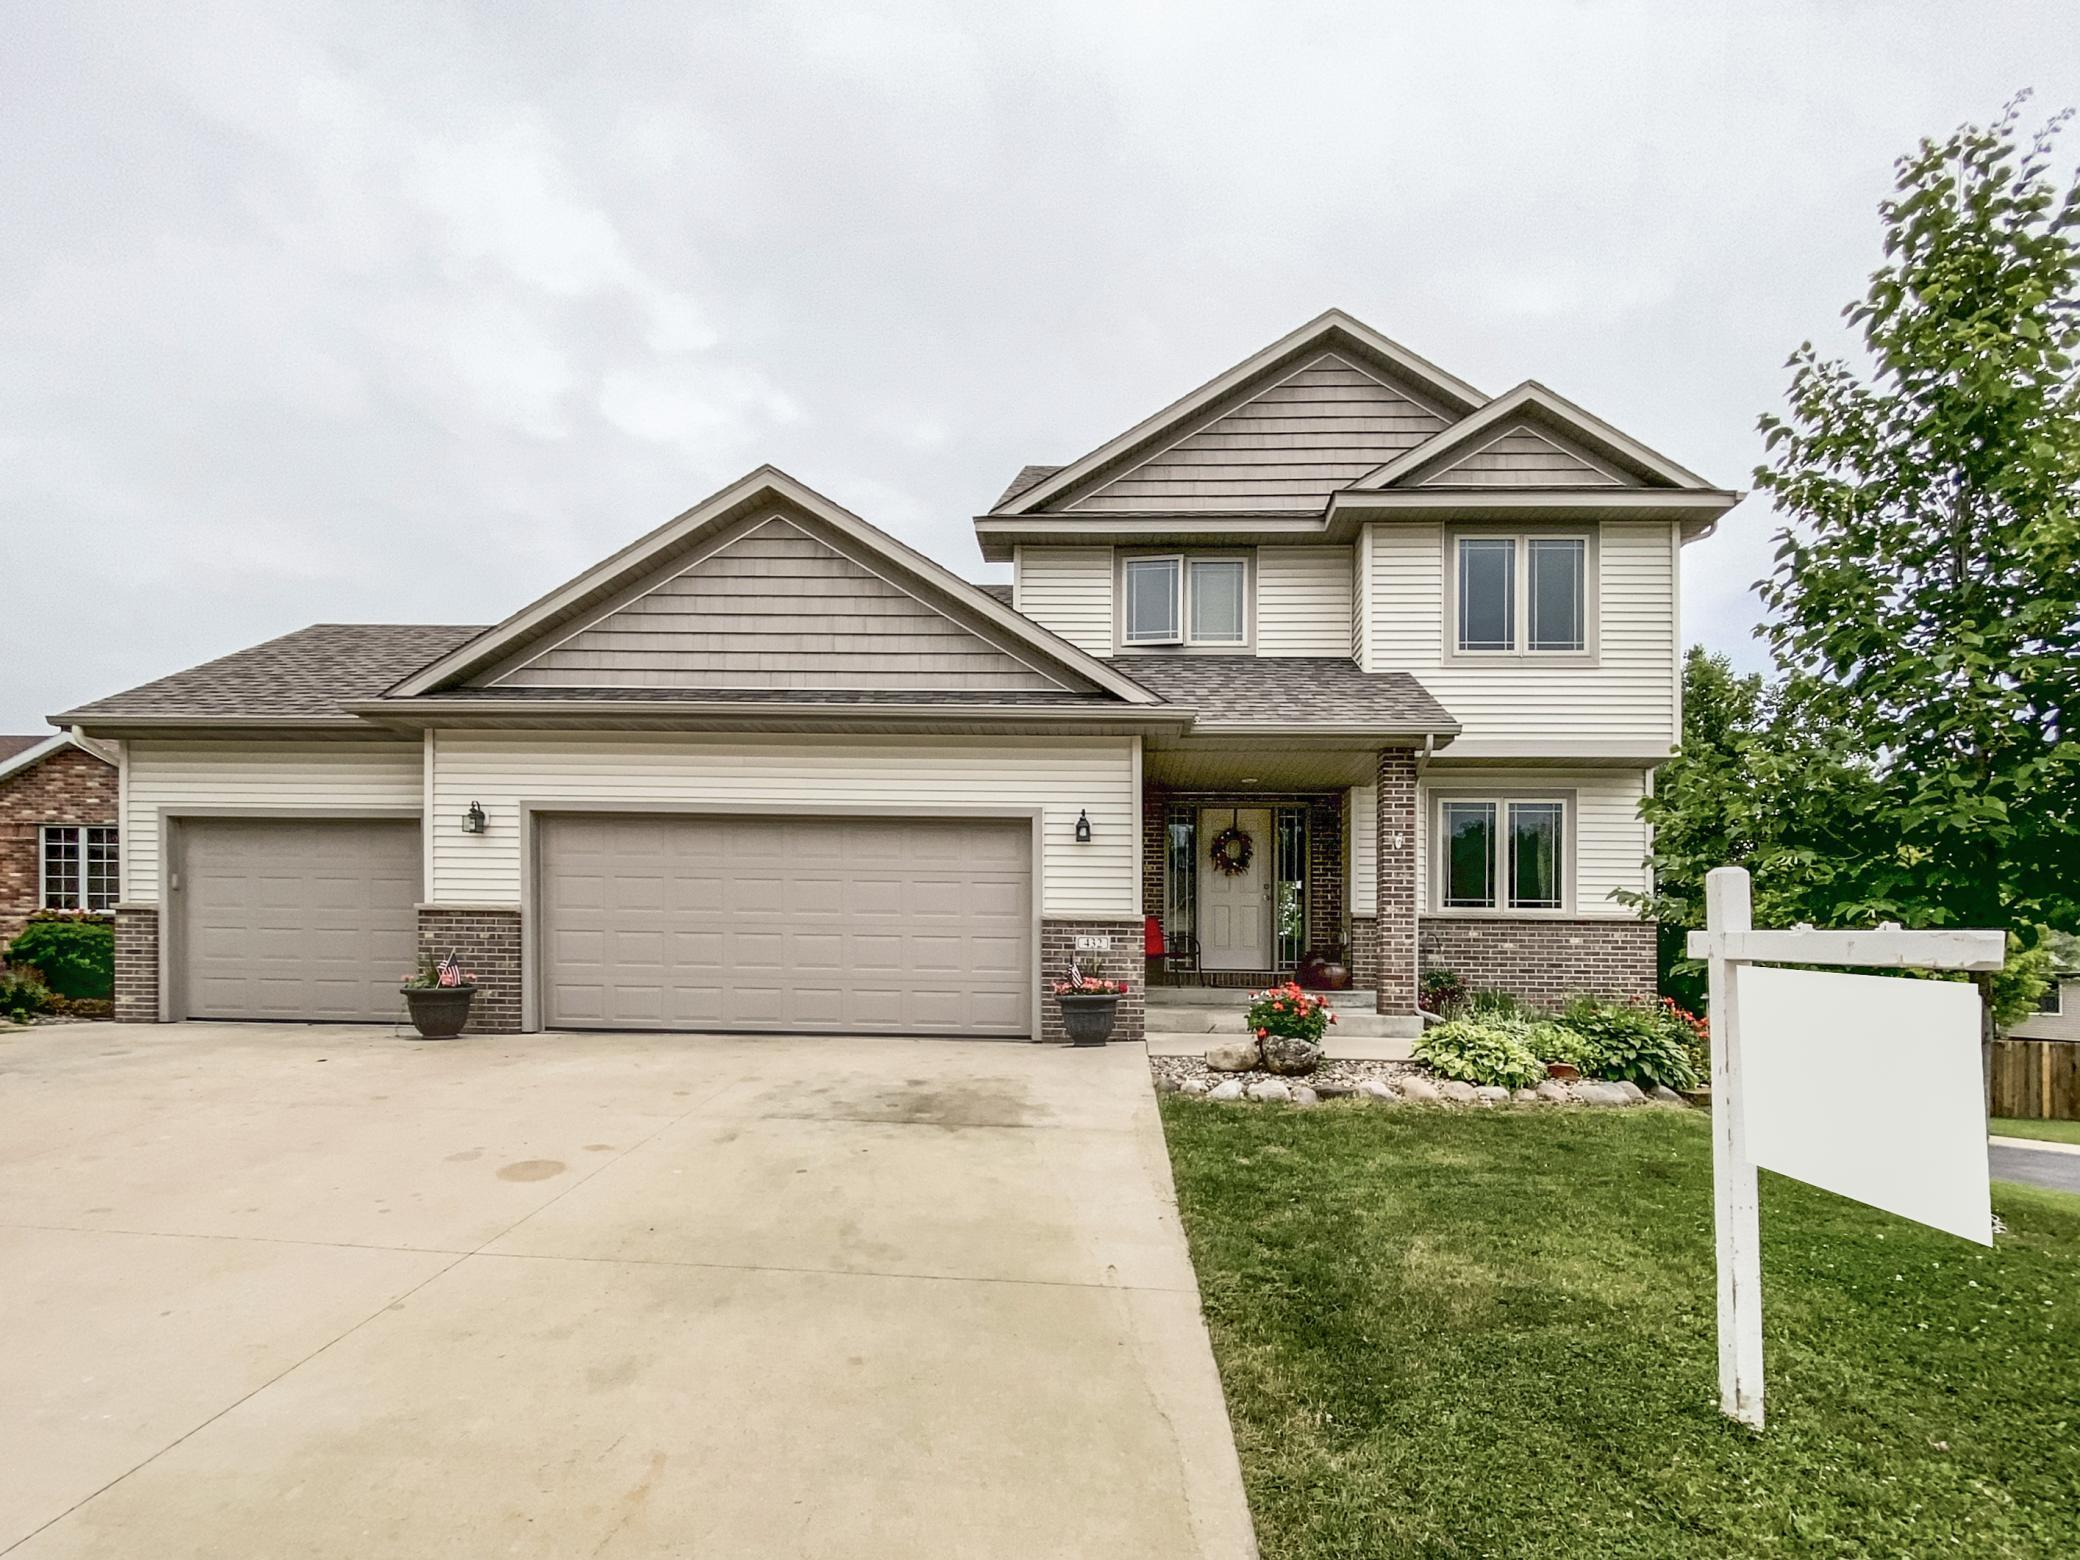 432 Manor Ridge NW Property Photo - Rochester, MN real estate listing